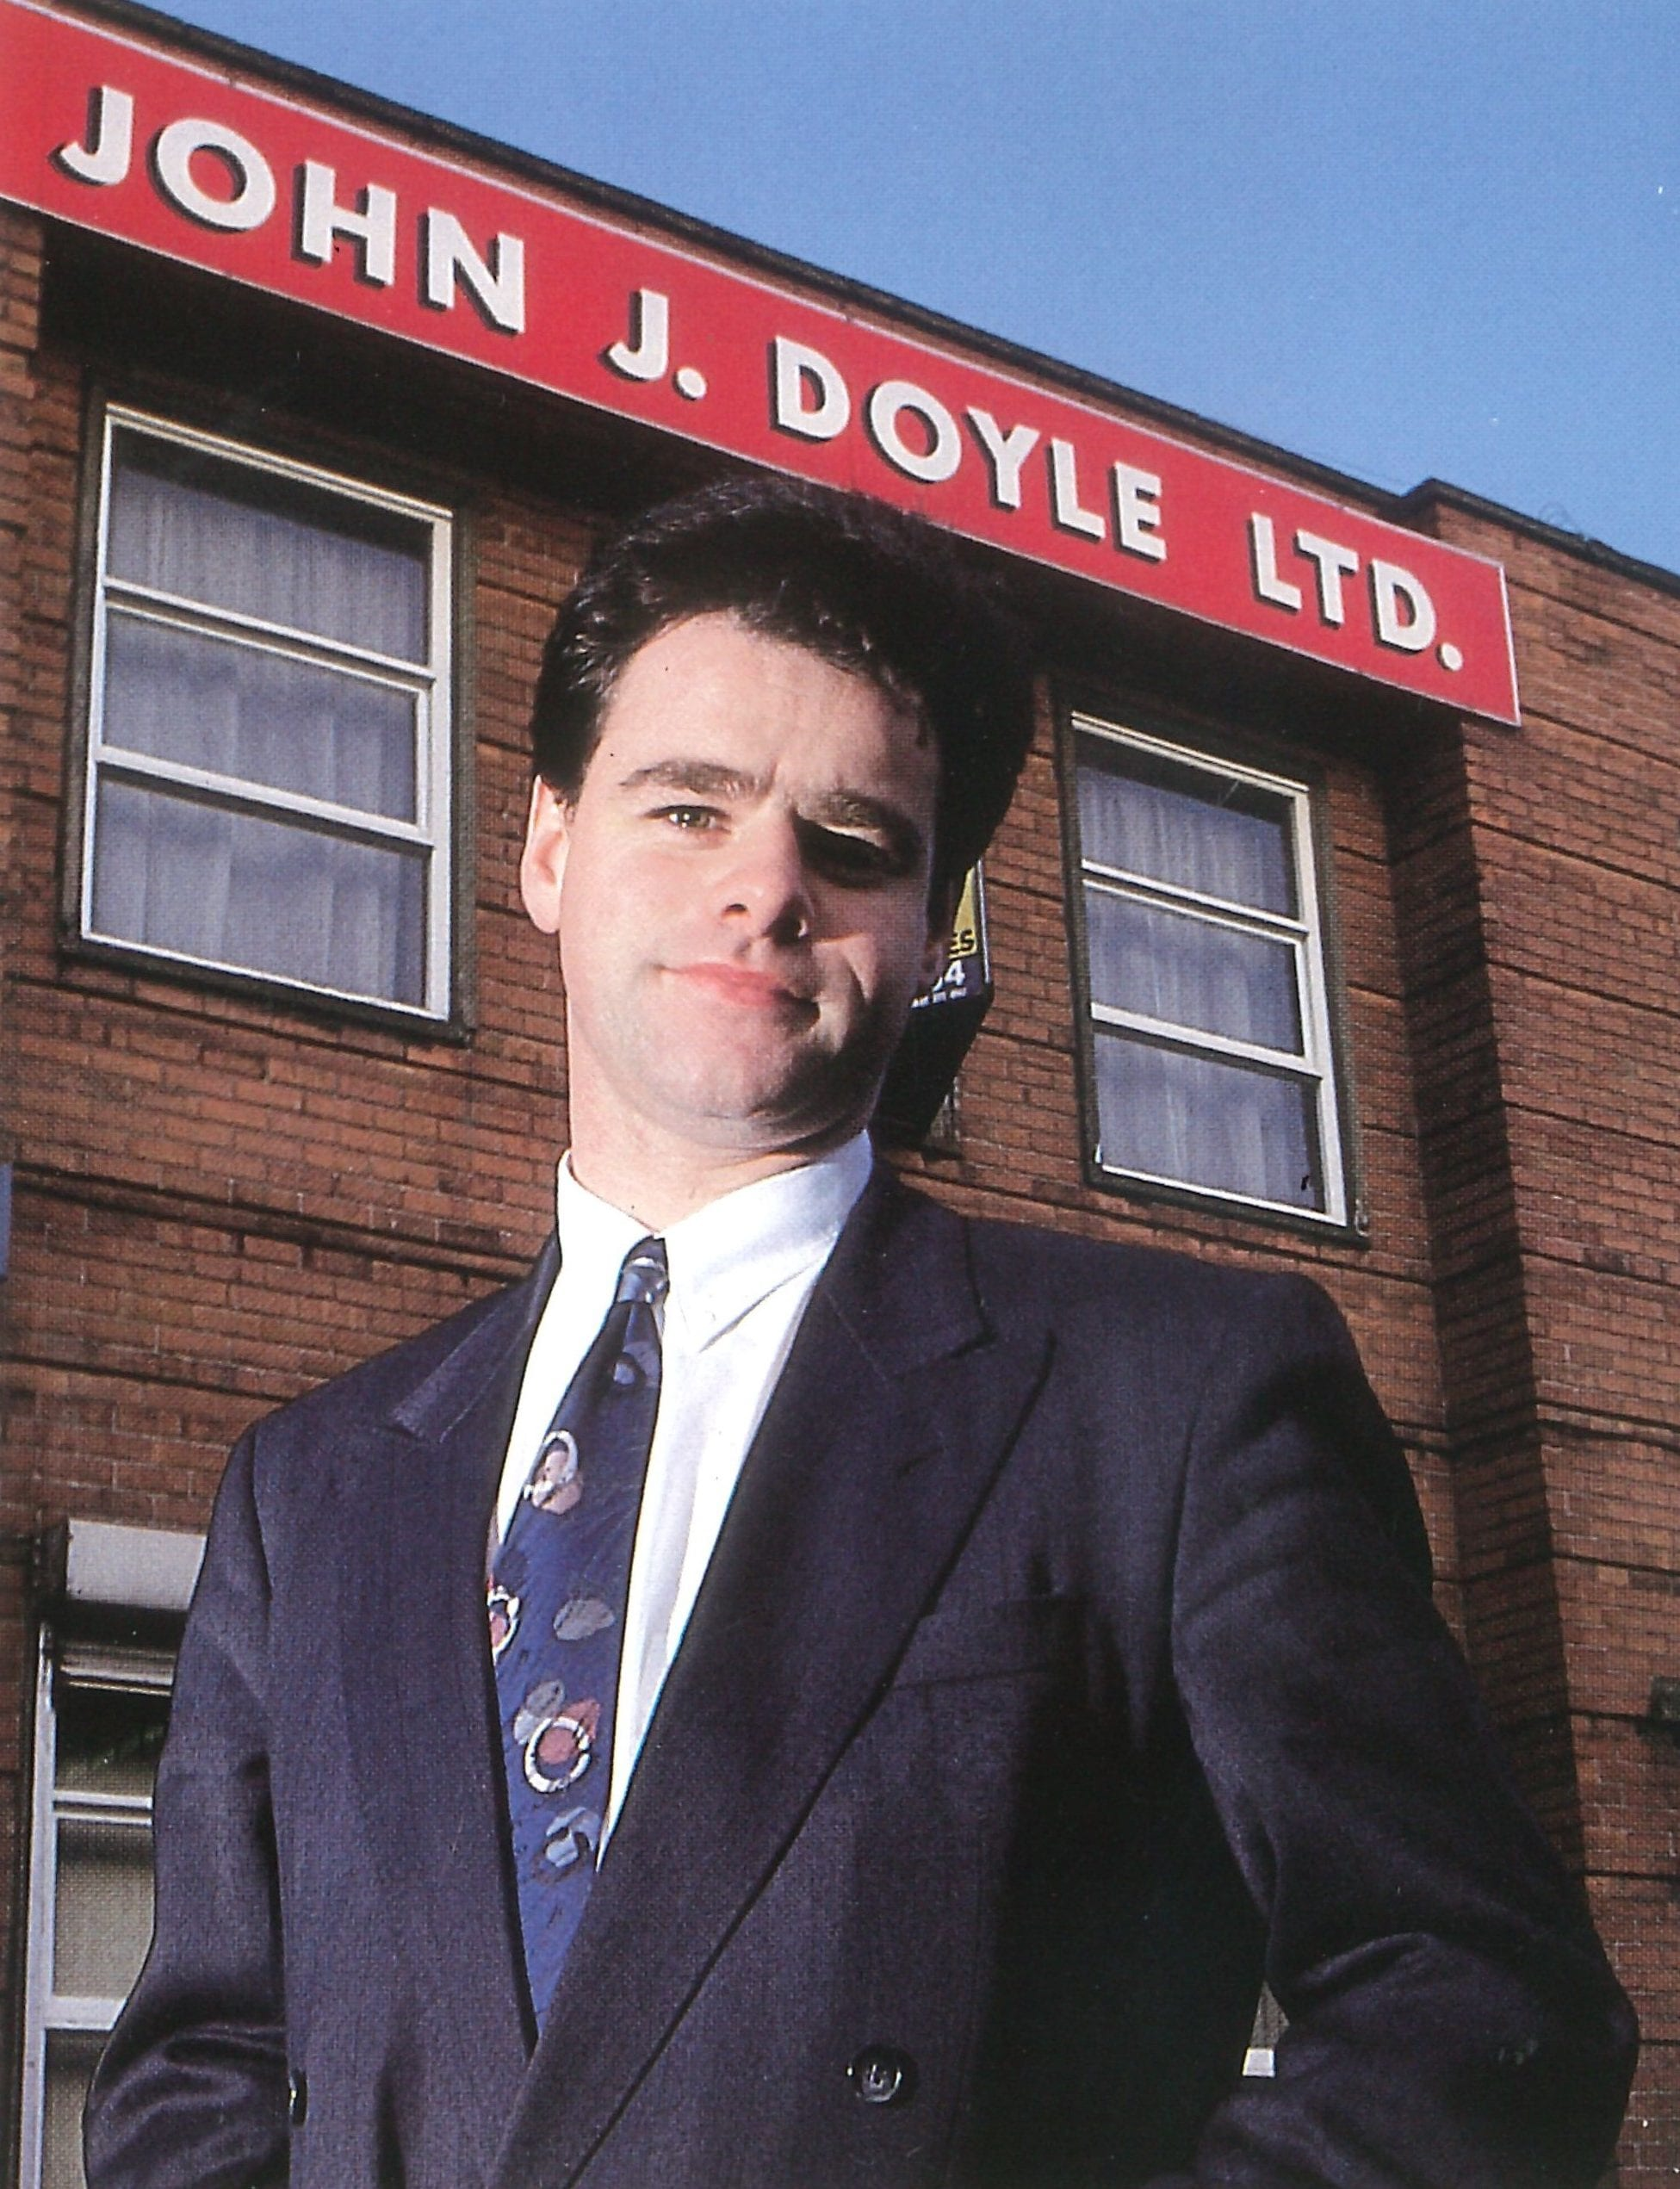 John J Doyle Ltd, 1987, Featured Image